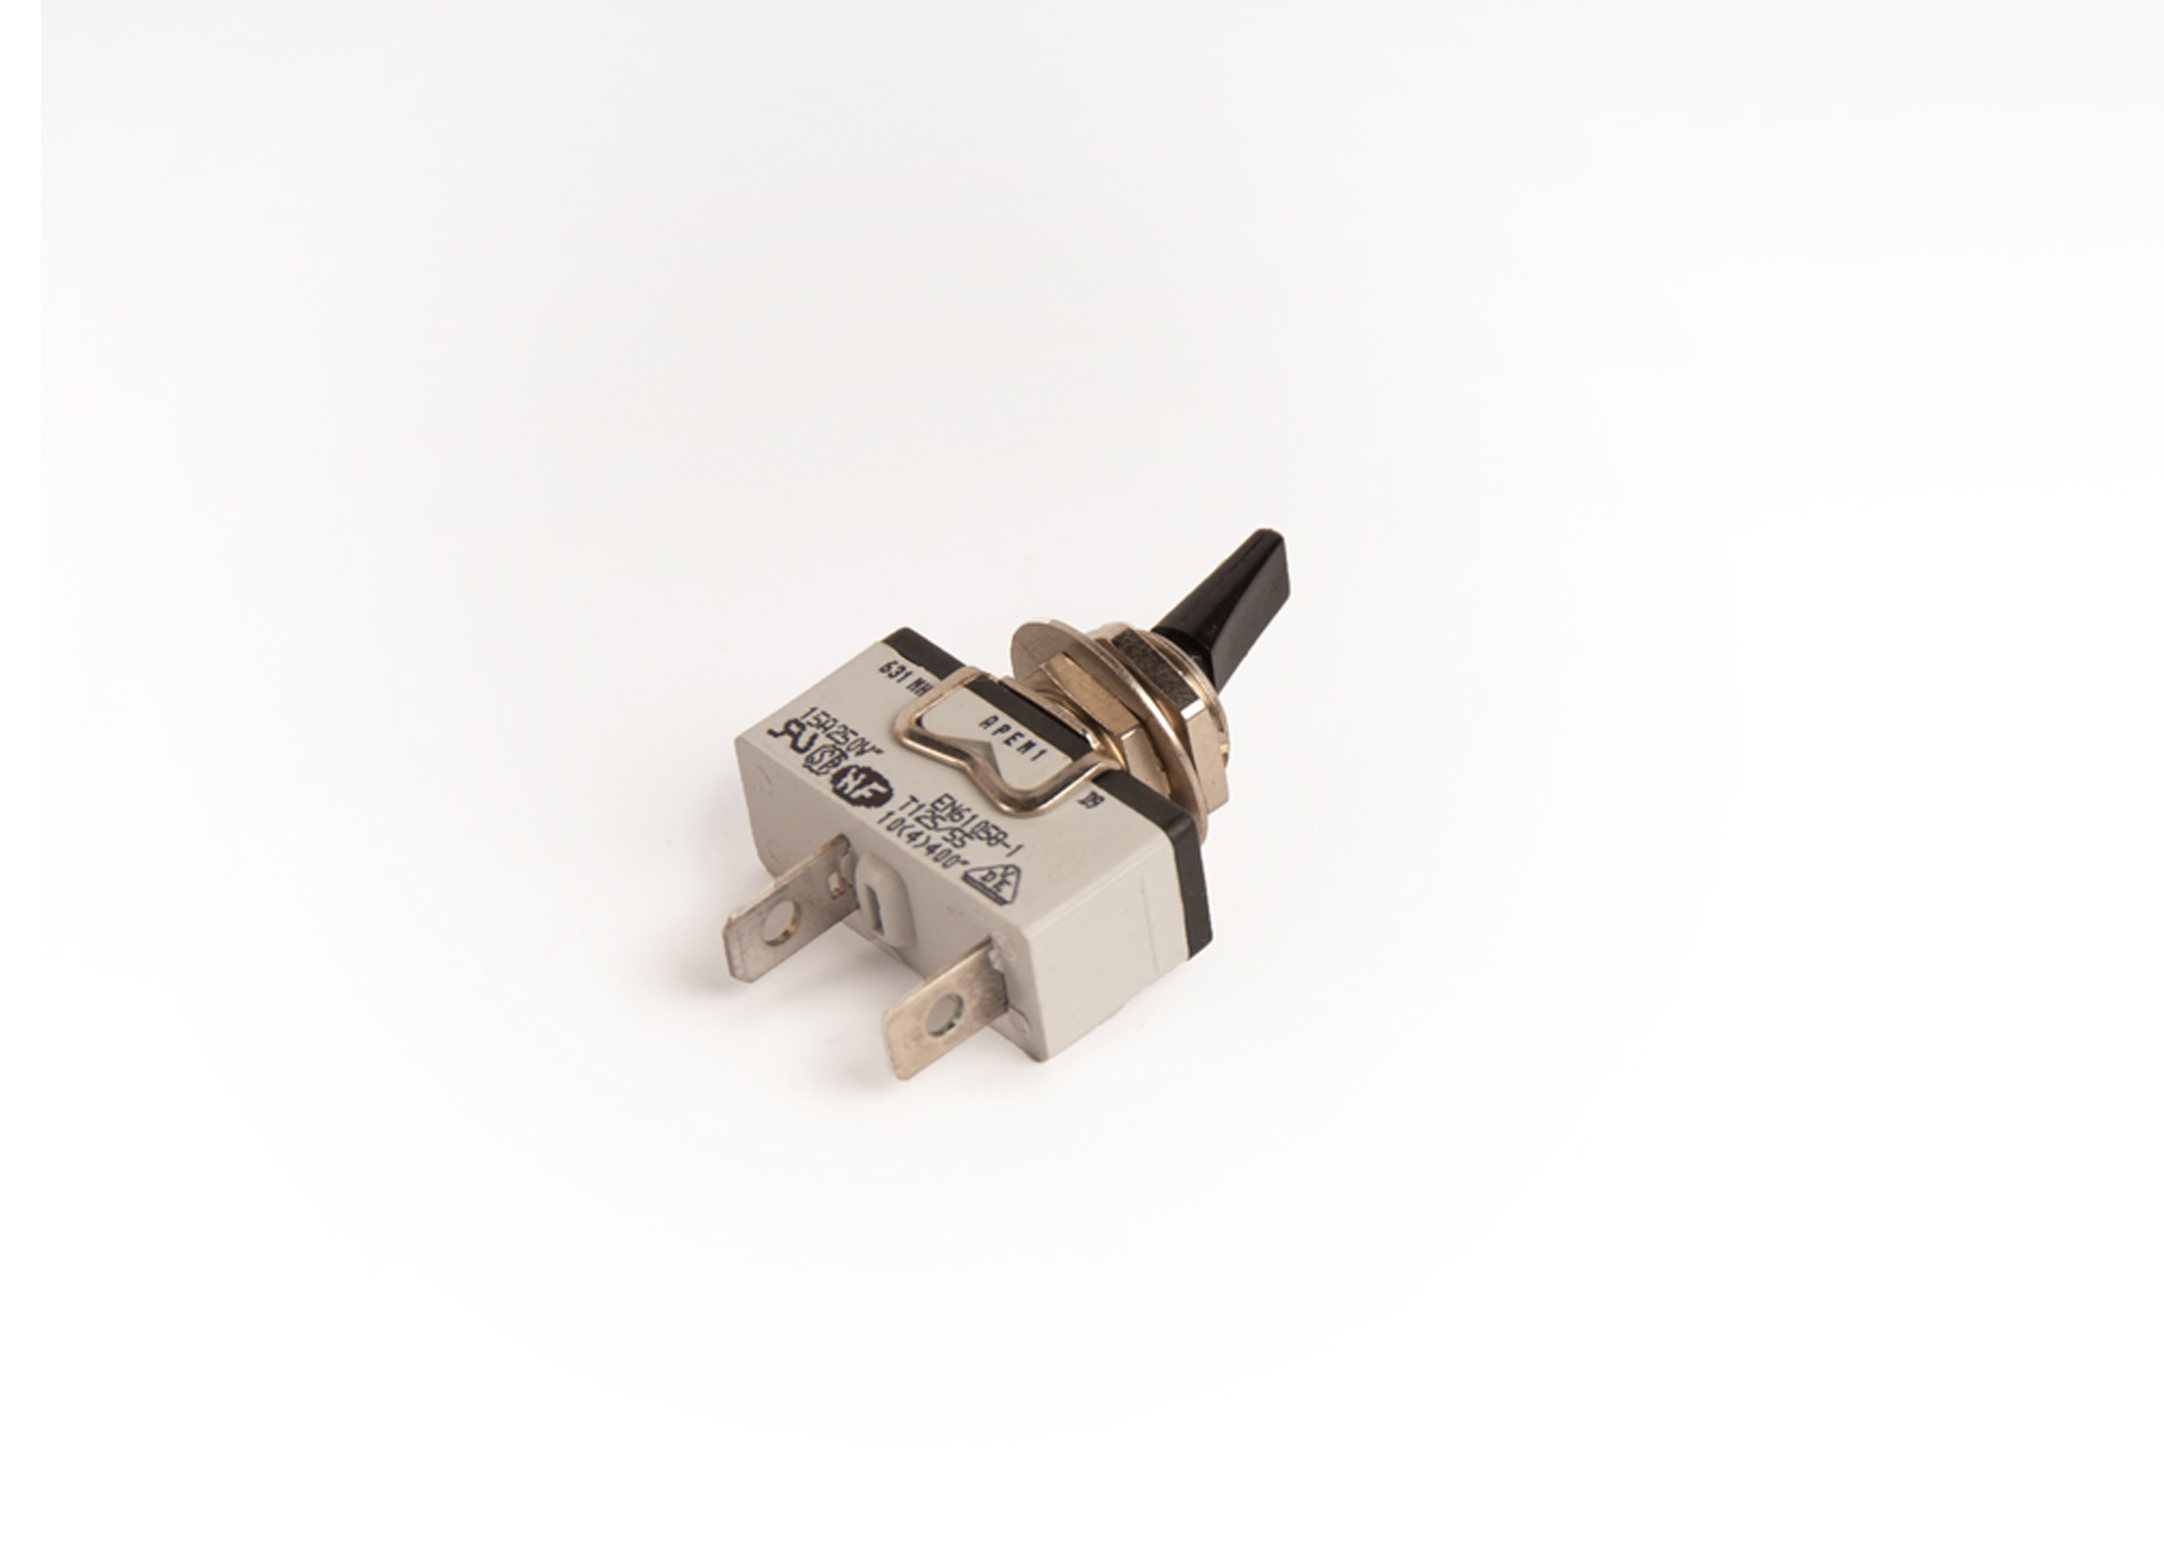 K9-II On-Off Toggle Switch